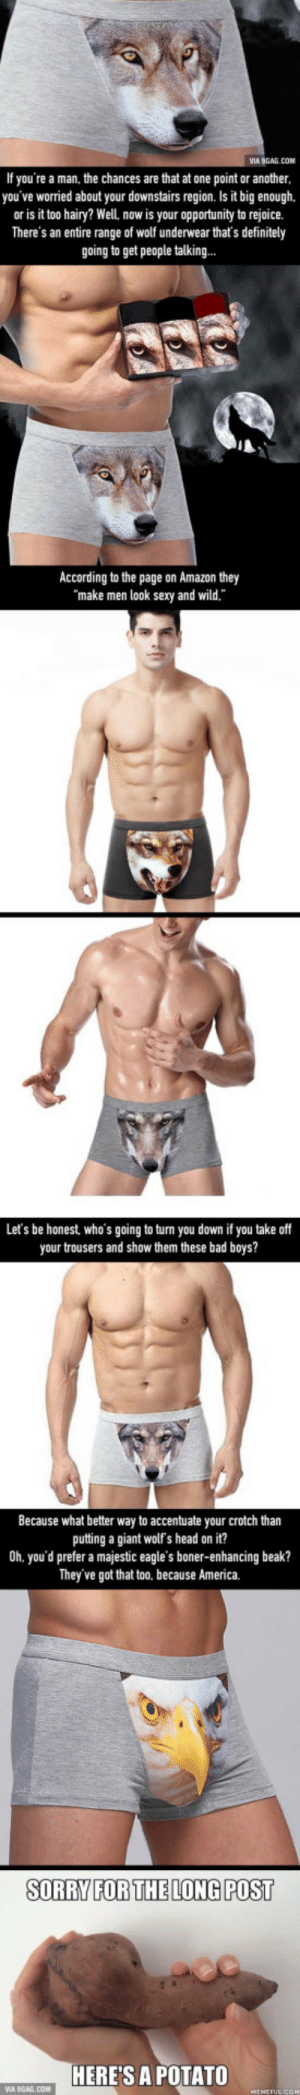 Make Your Junk Look Truly Wild With Wolf Print Underwear: VIA 9GAG.CON  If you're a man, the chances are that at one point or another  you've worried about your downstairs region. Is it big enough,  or is it too hairy? Well, now is your opportunity to rejoice.  There's an entire range of wolf underwear that's definitely  going to get people talking...  According to the page on Amazon they  make men look sexy and wild.  Let's be honest, who's going to turn you down if you take off  your trousers and show them these bad boys?  Because what better way to accentuate your crotch than  putting a giant wolf's head on it?  0h. you'd prefer a majestic eagle's boner-enhancing beak?  They've got that too. because America.  SORRY FORTHELONG POST  HERE'S A POTATO Make Your Junk Look Truly Wild With Wolf Print Underwear